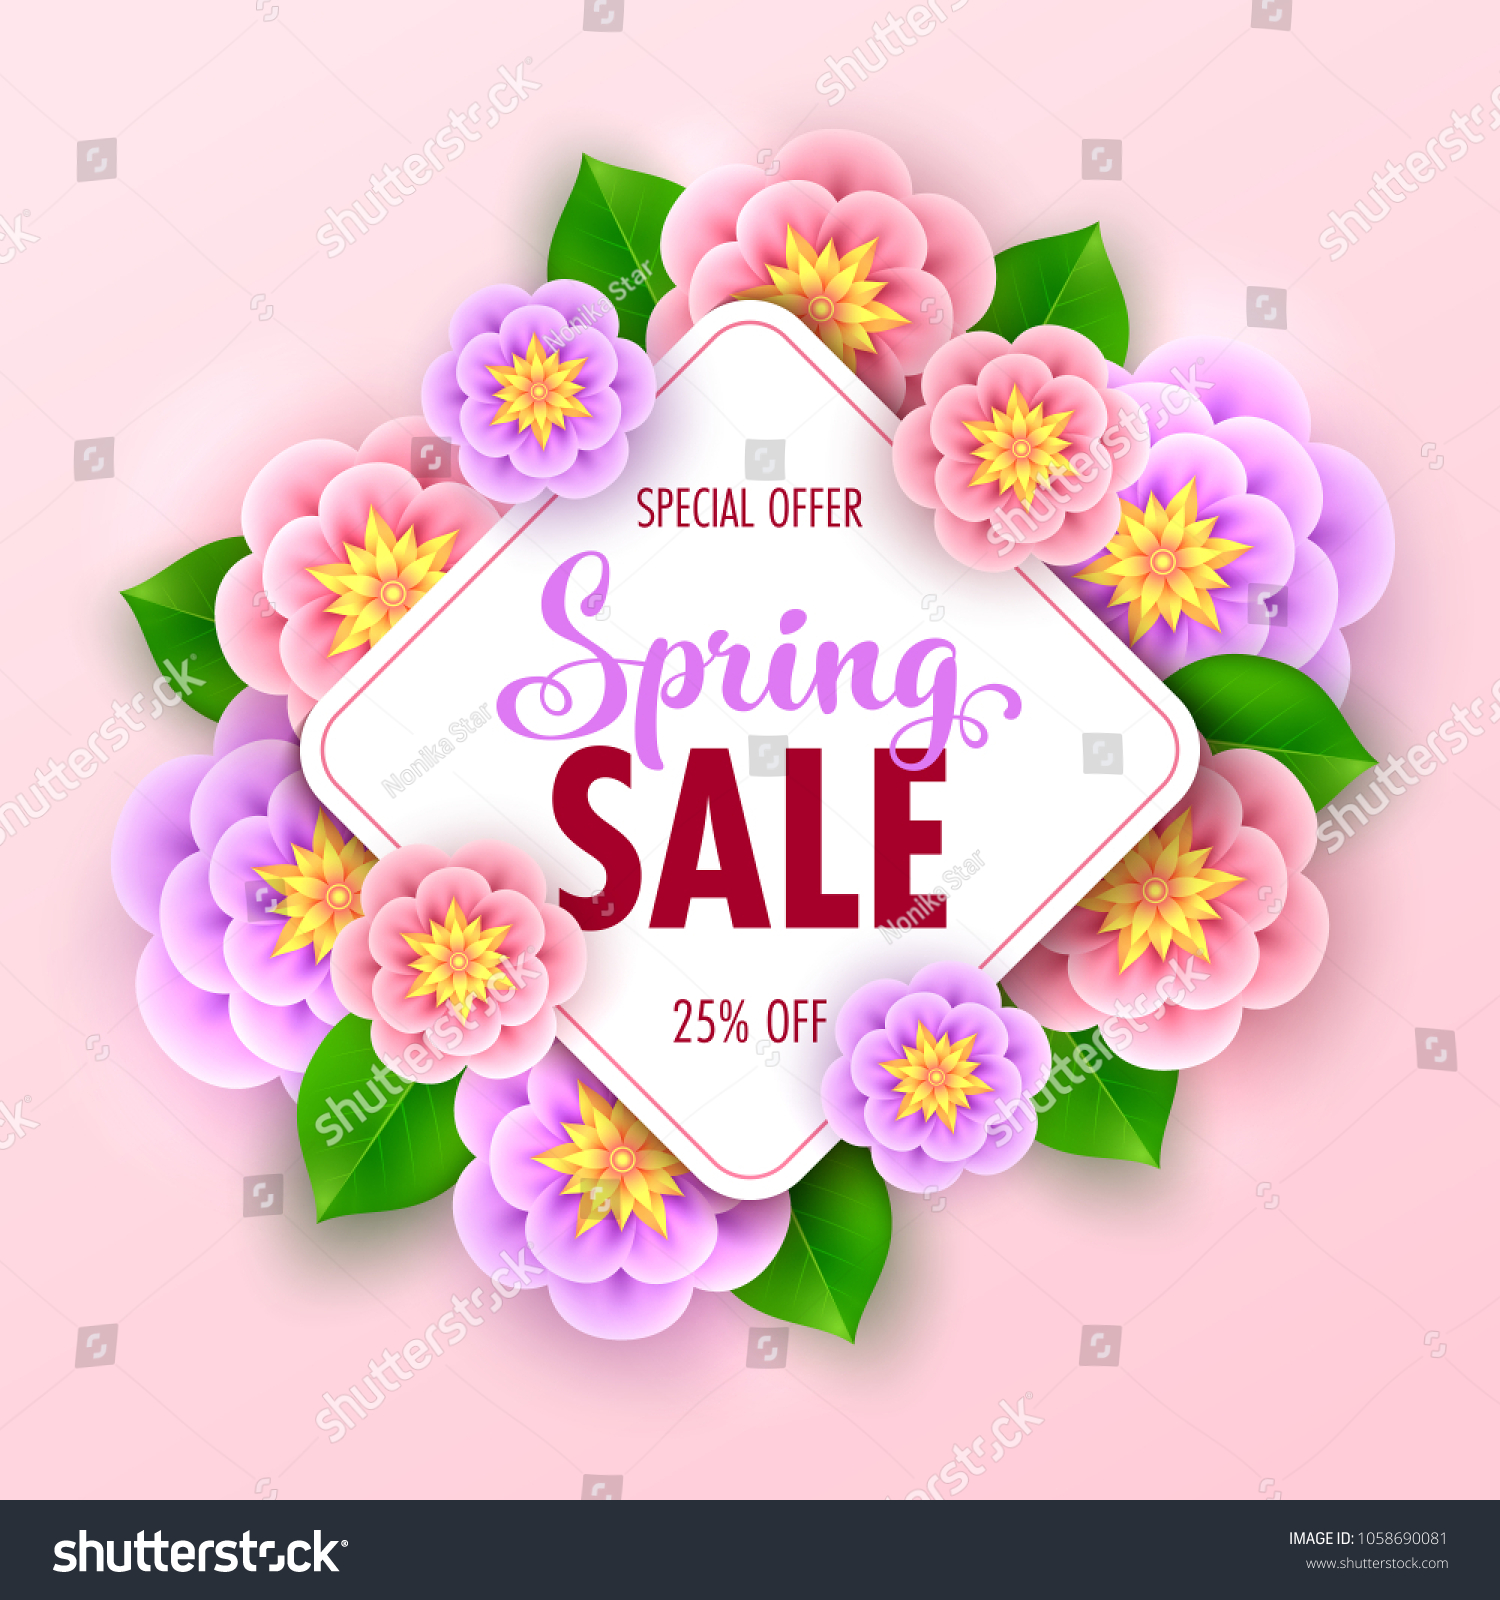 Floral spring sale banner beautiful flowers stock vector royalty floral spring sale banner with beautiful flowers for online shopping vector illustration izmirmasajfo